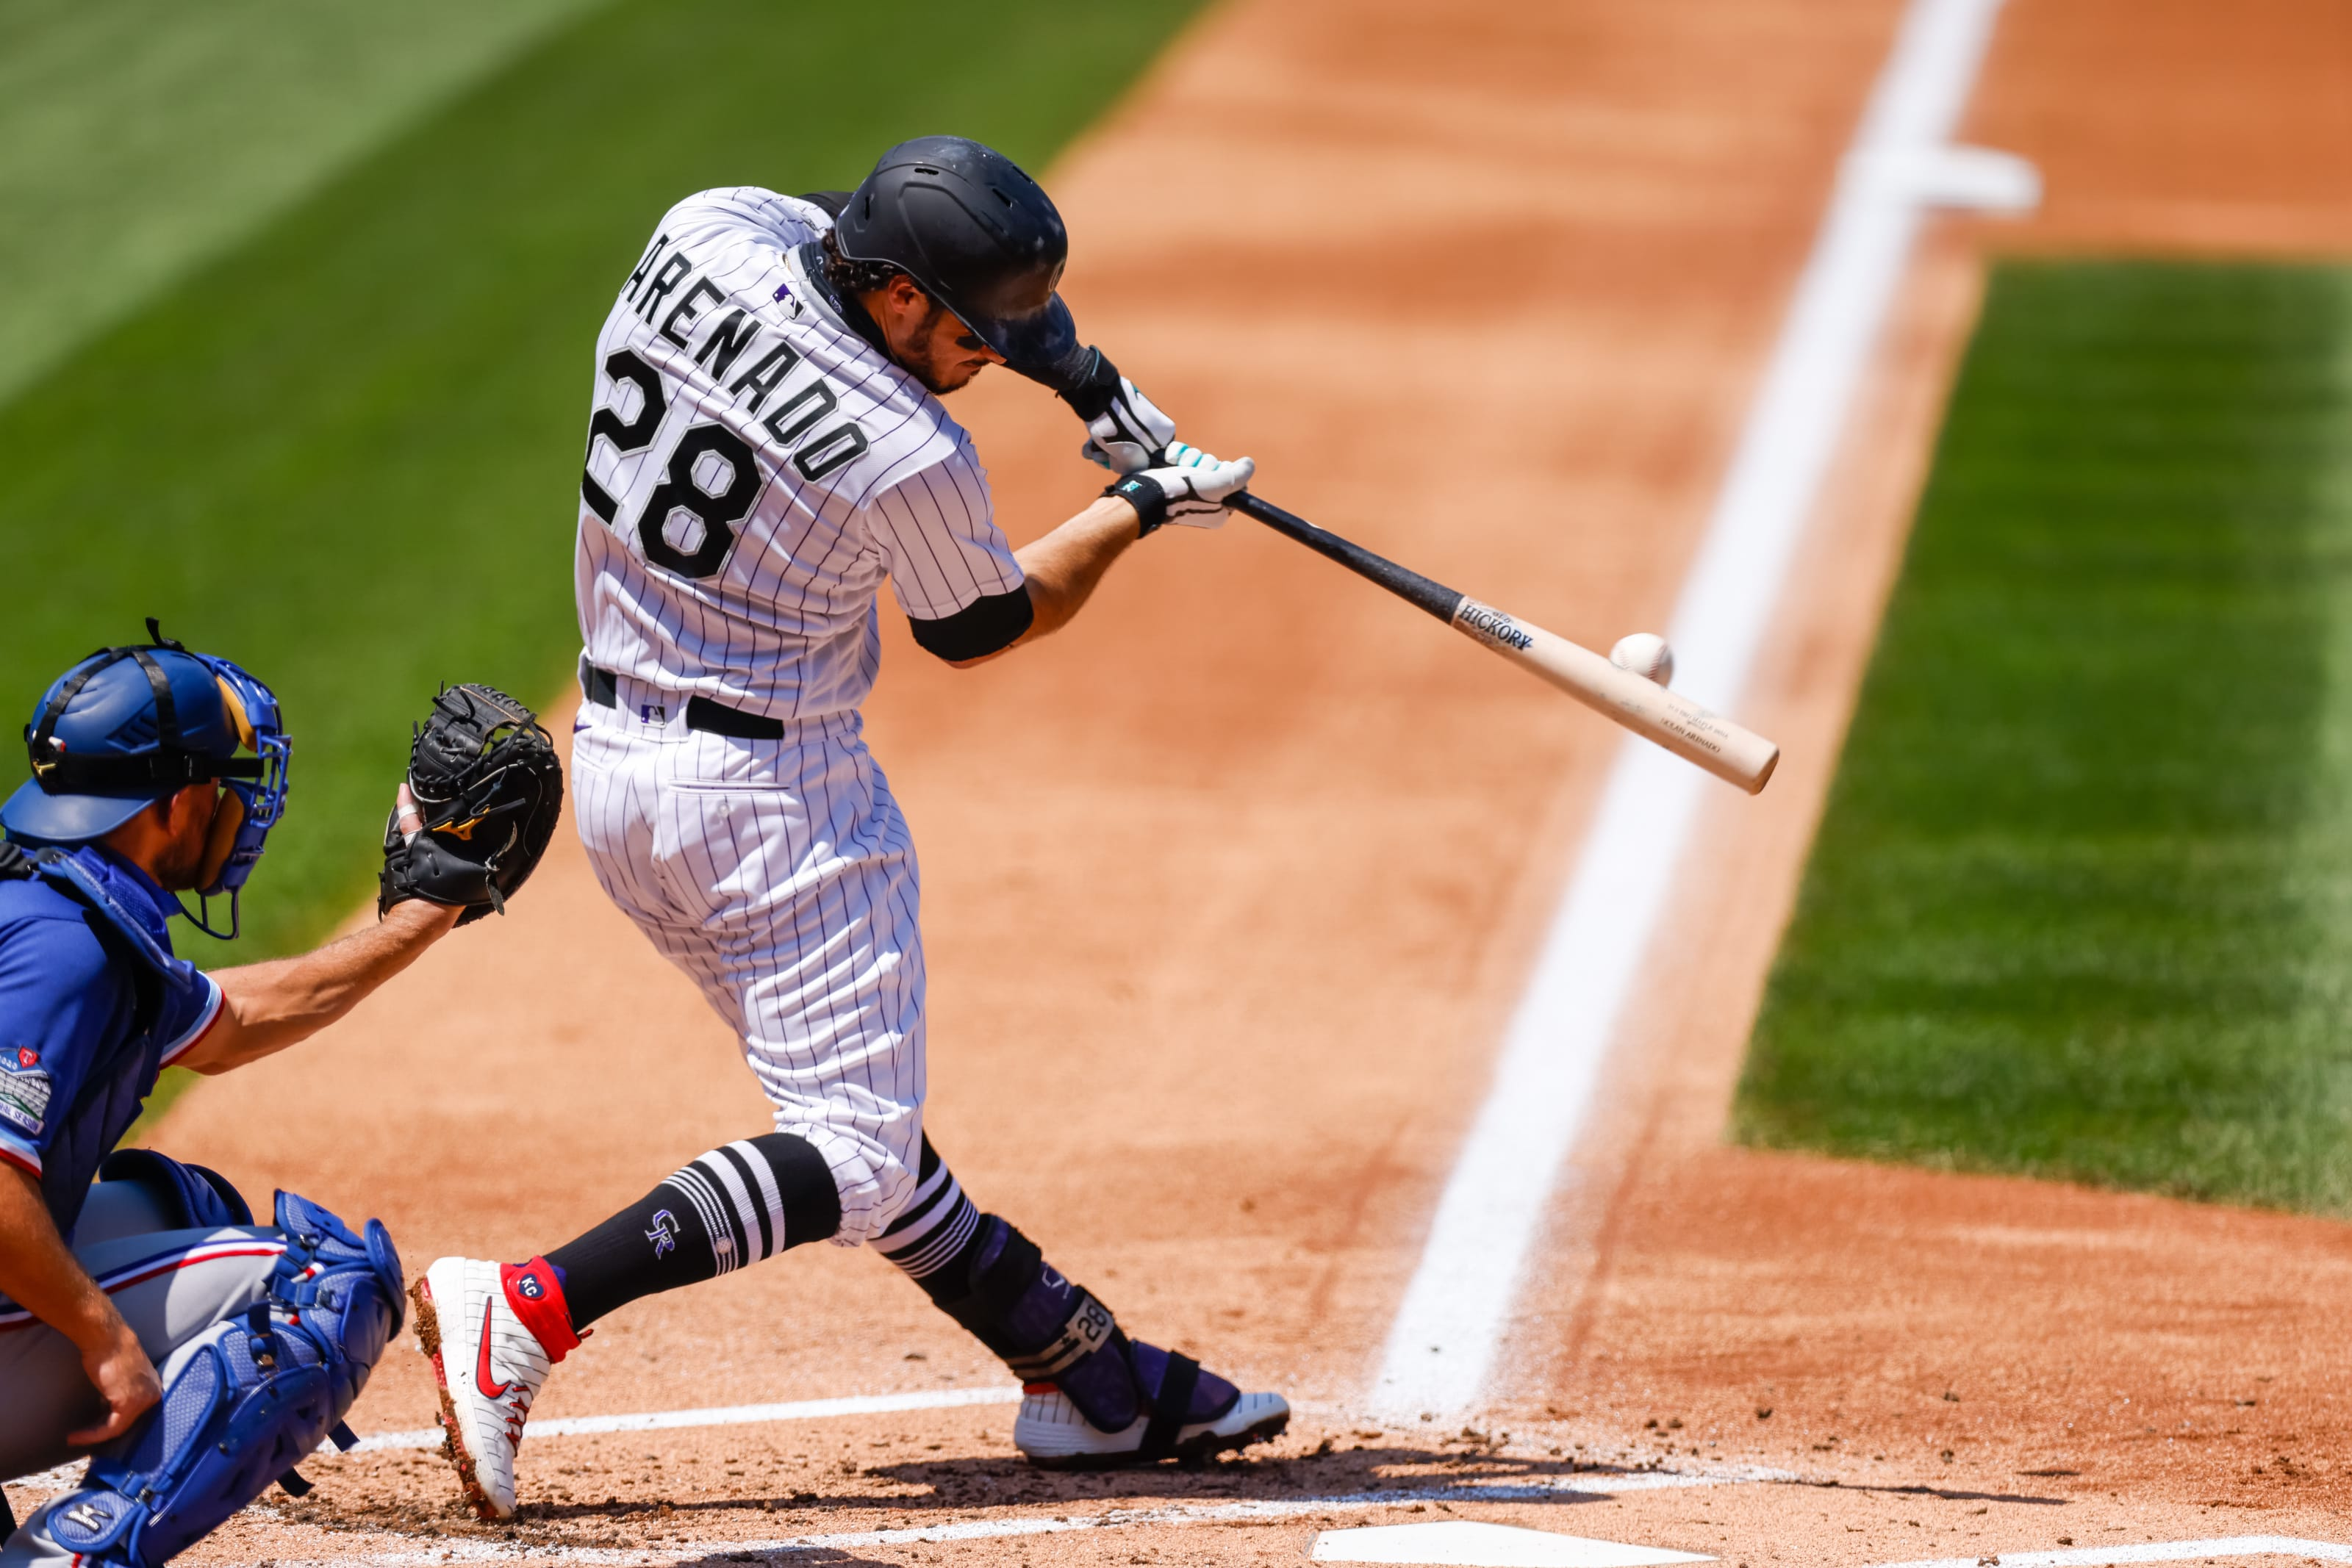 Kansas City Royals missed opportunity to acquire Nolan Arenado